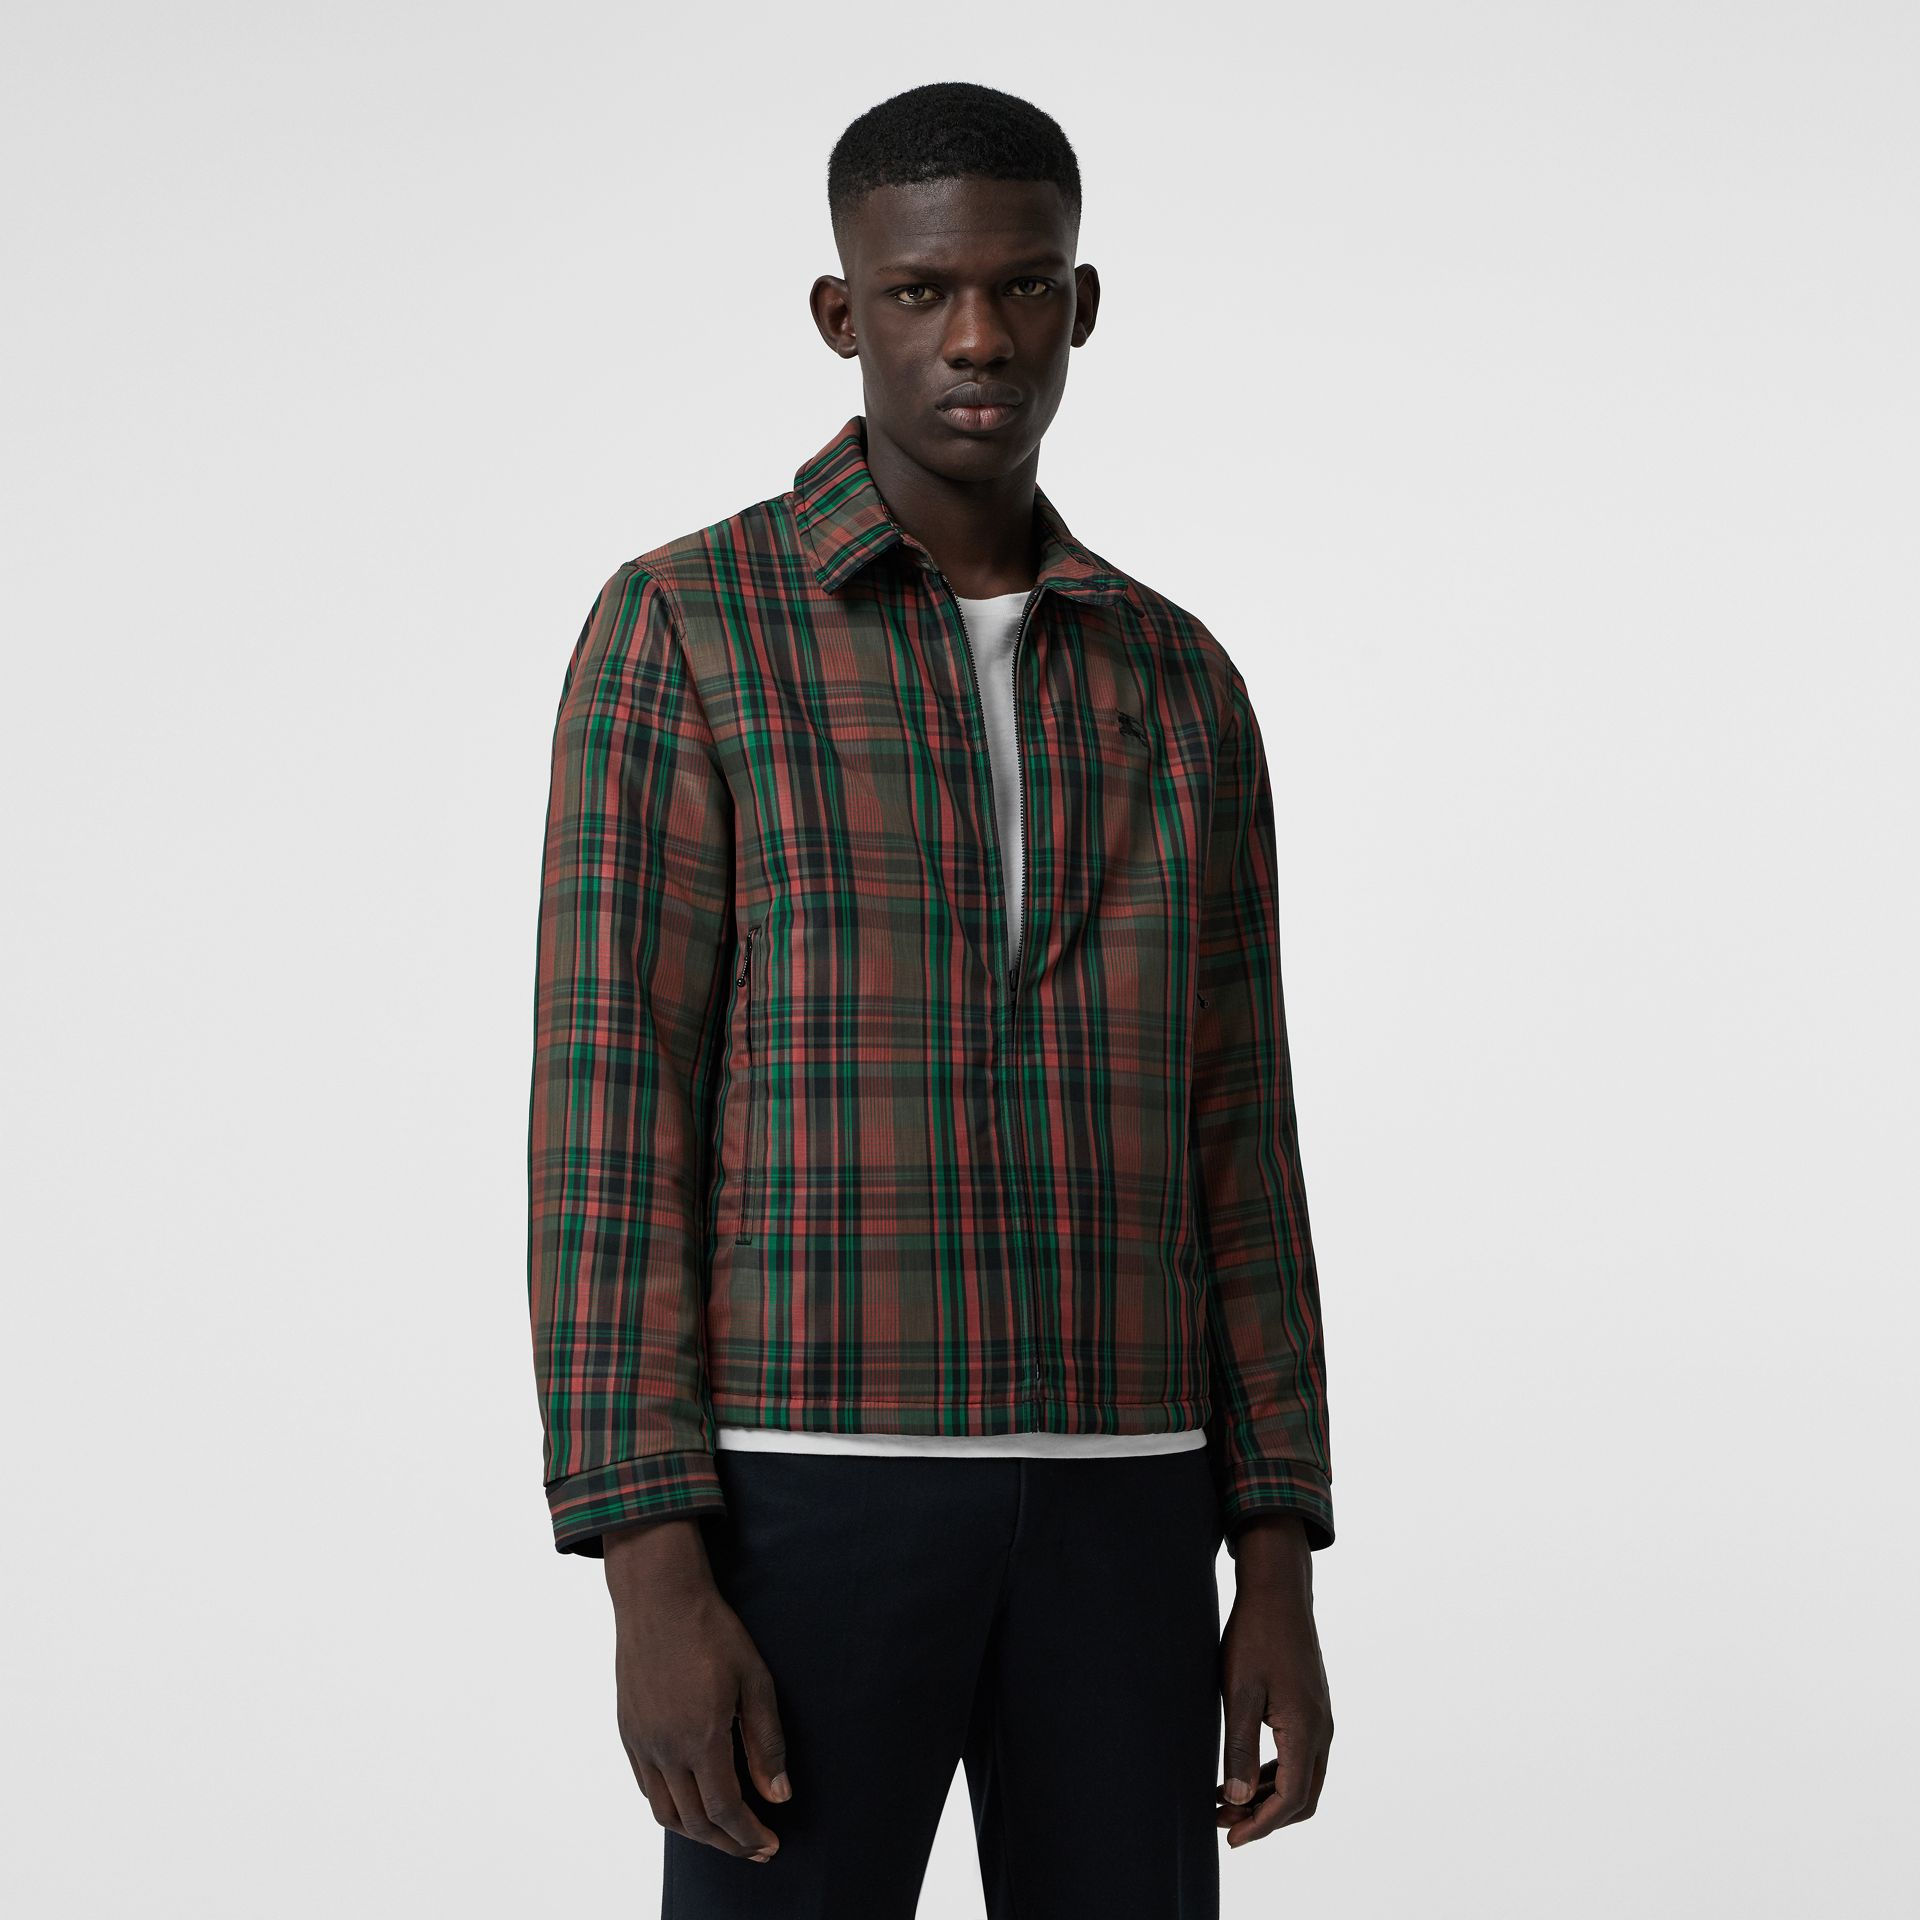 Veste Harrington à motif check avec doublure molletonnée (Rouge Feuille Morte) - Homme | Burberry - photo de la galerie 4